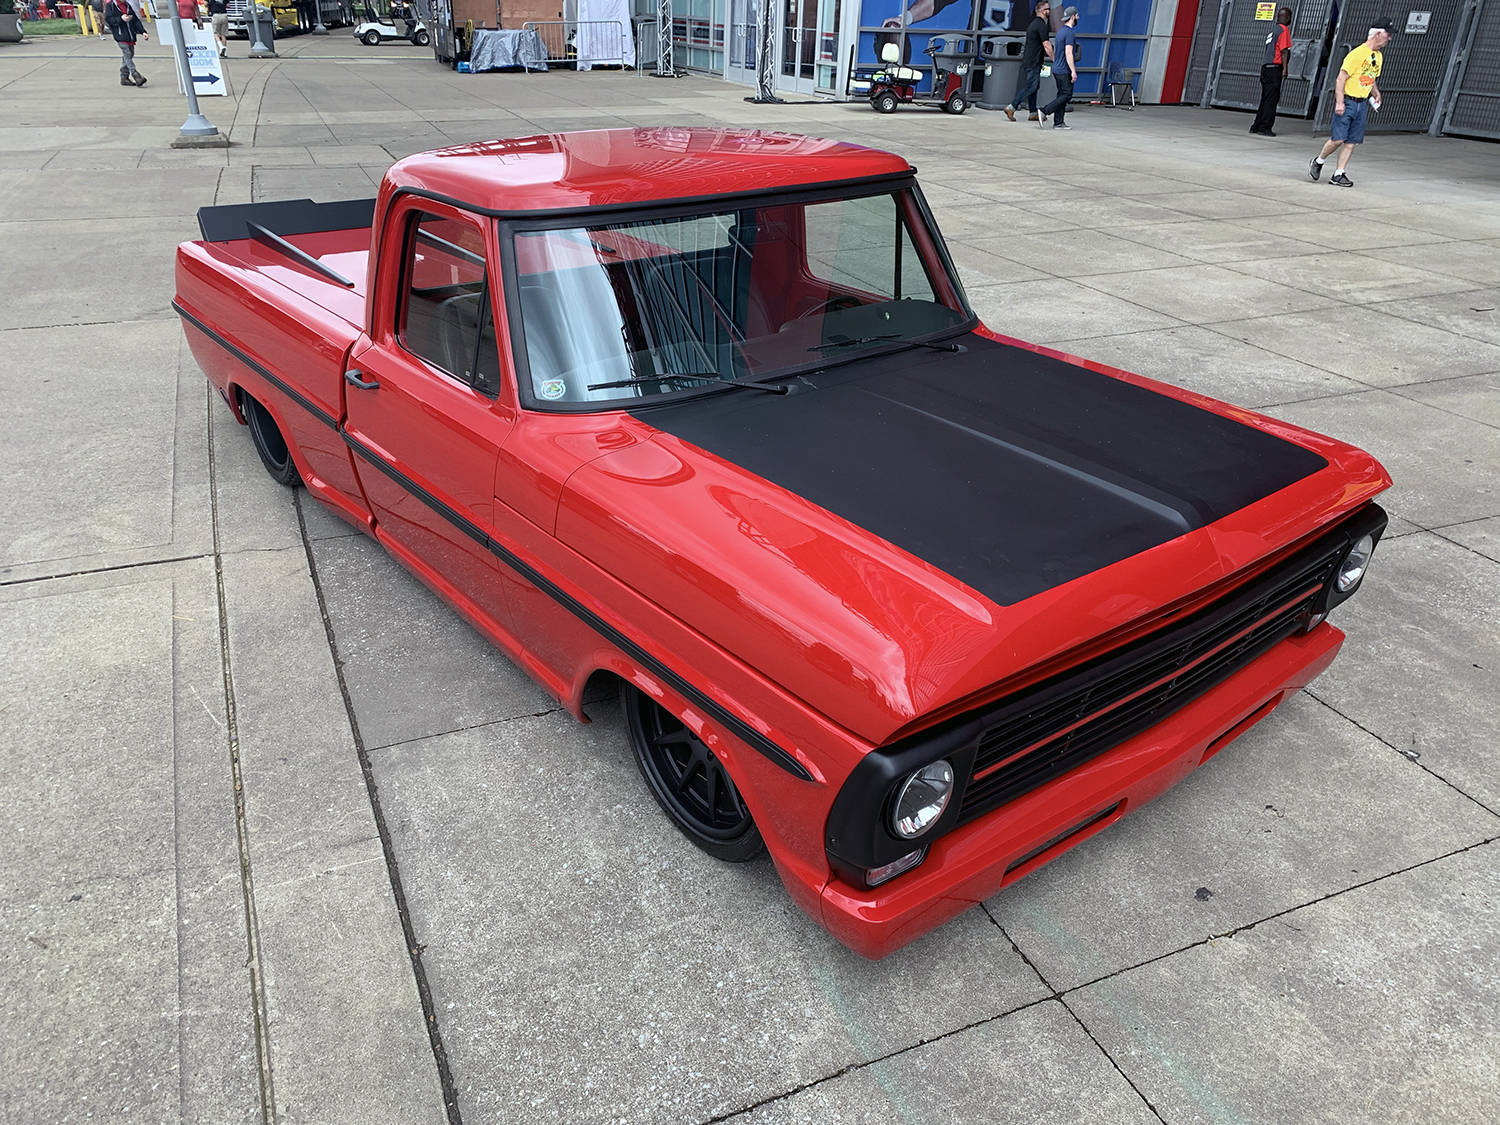 scotts-hotrods-good-guys-nashville-2019-21